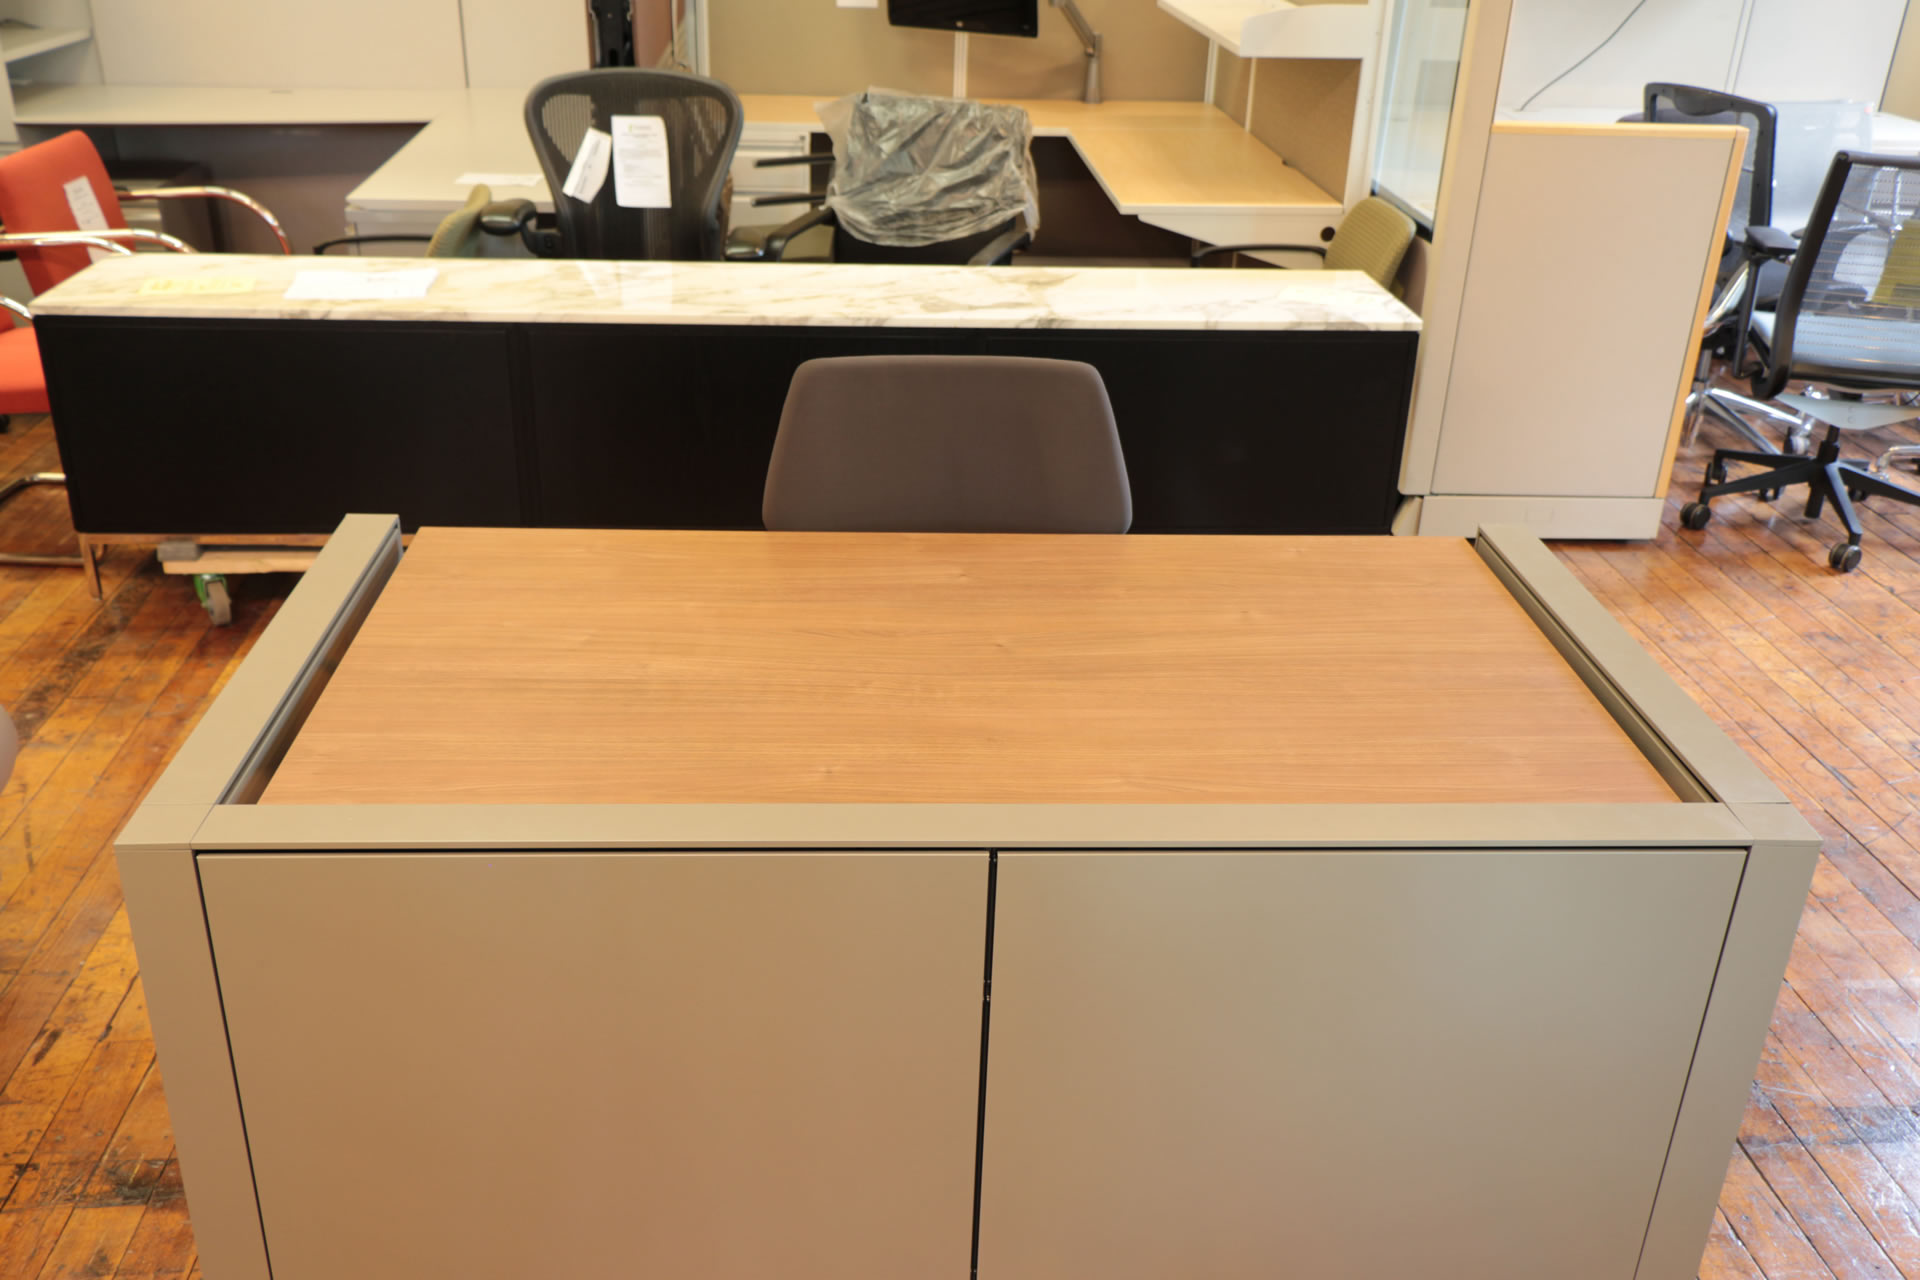 peartreeofficefurniture_peartreeofficefurniture_peartreeofficefurniture_img_8456.jpg